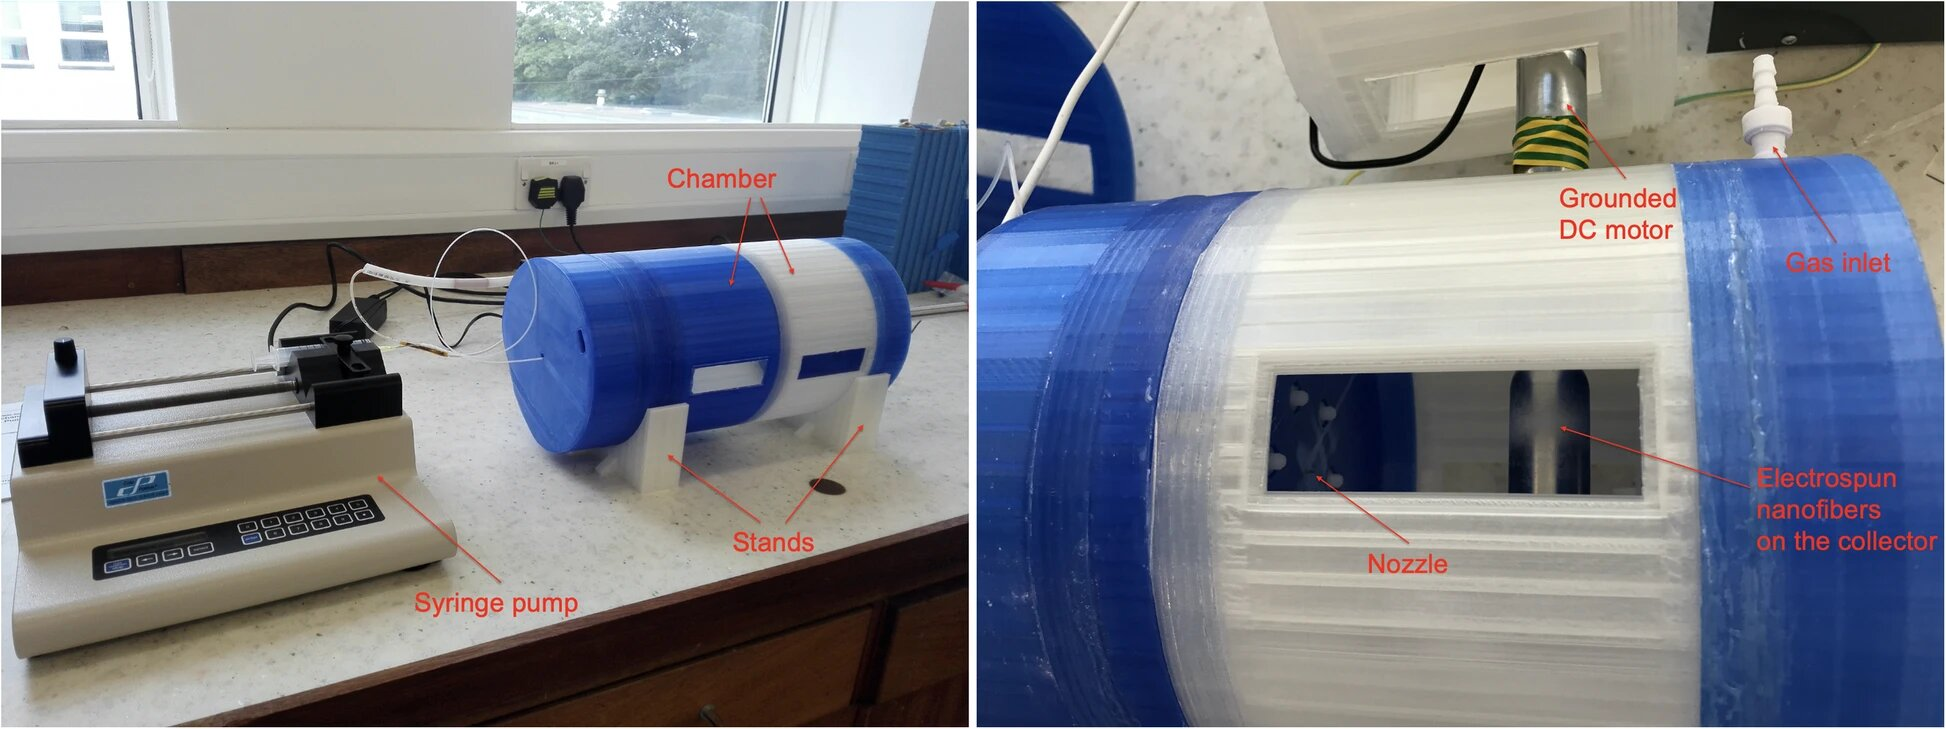 Left: The 3D-printed setup with two chamber parts assembled in electrospray mode. Right: The 3D-printed setup with the rotating collector chamber part during electrospinning nanofibers. Photo via 3D Printing in Medicine.